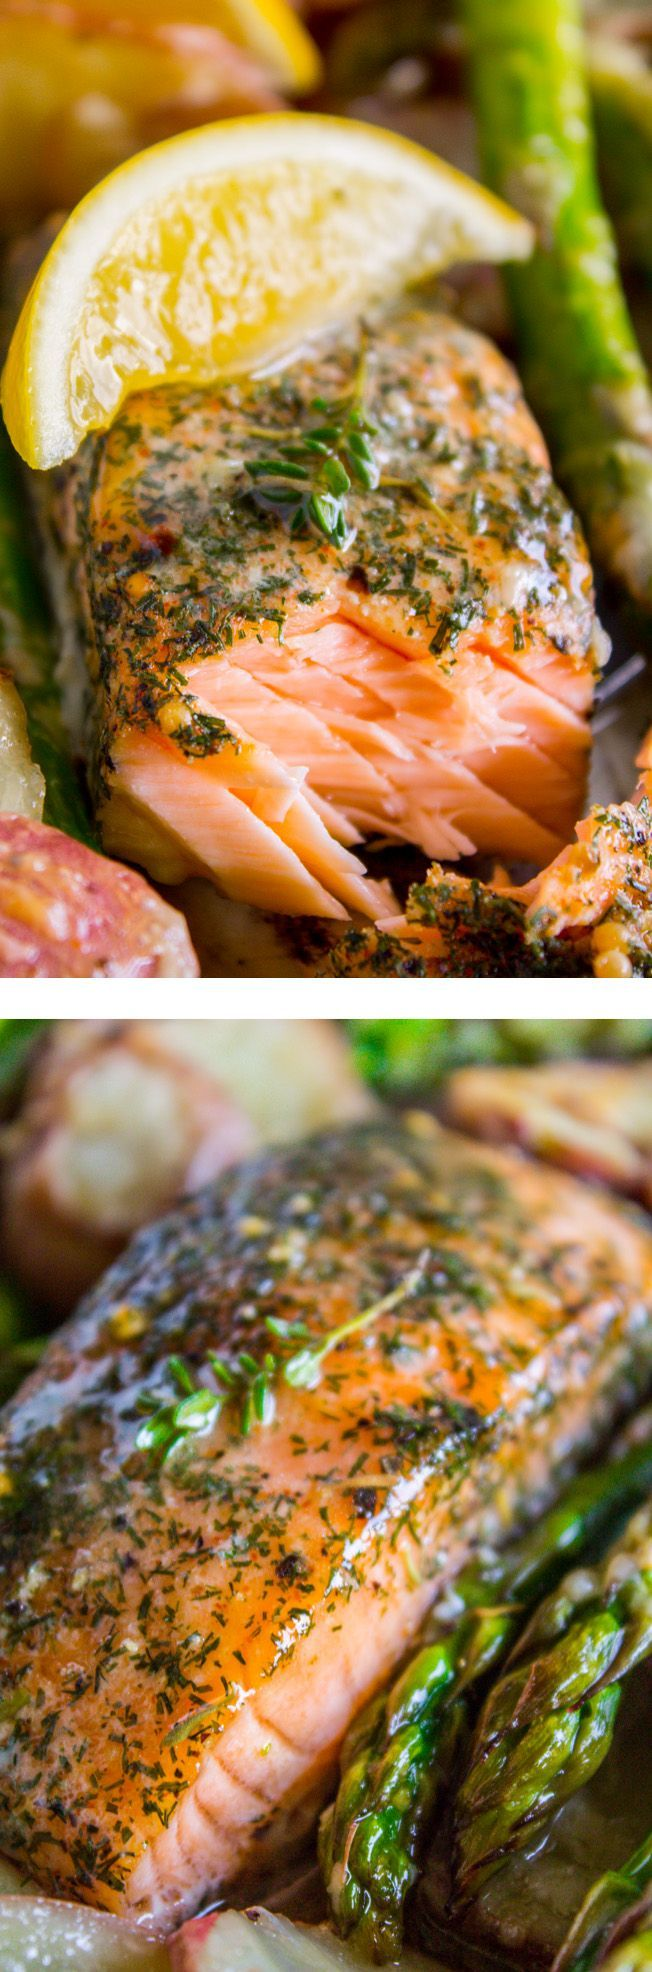 Sheet Pan Salmon with Creamy Scalloped Potatoes and Asparagus from The Food Charlatan.